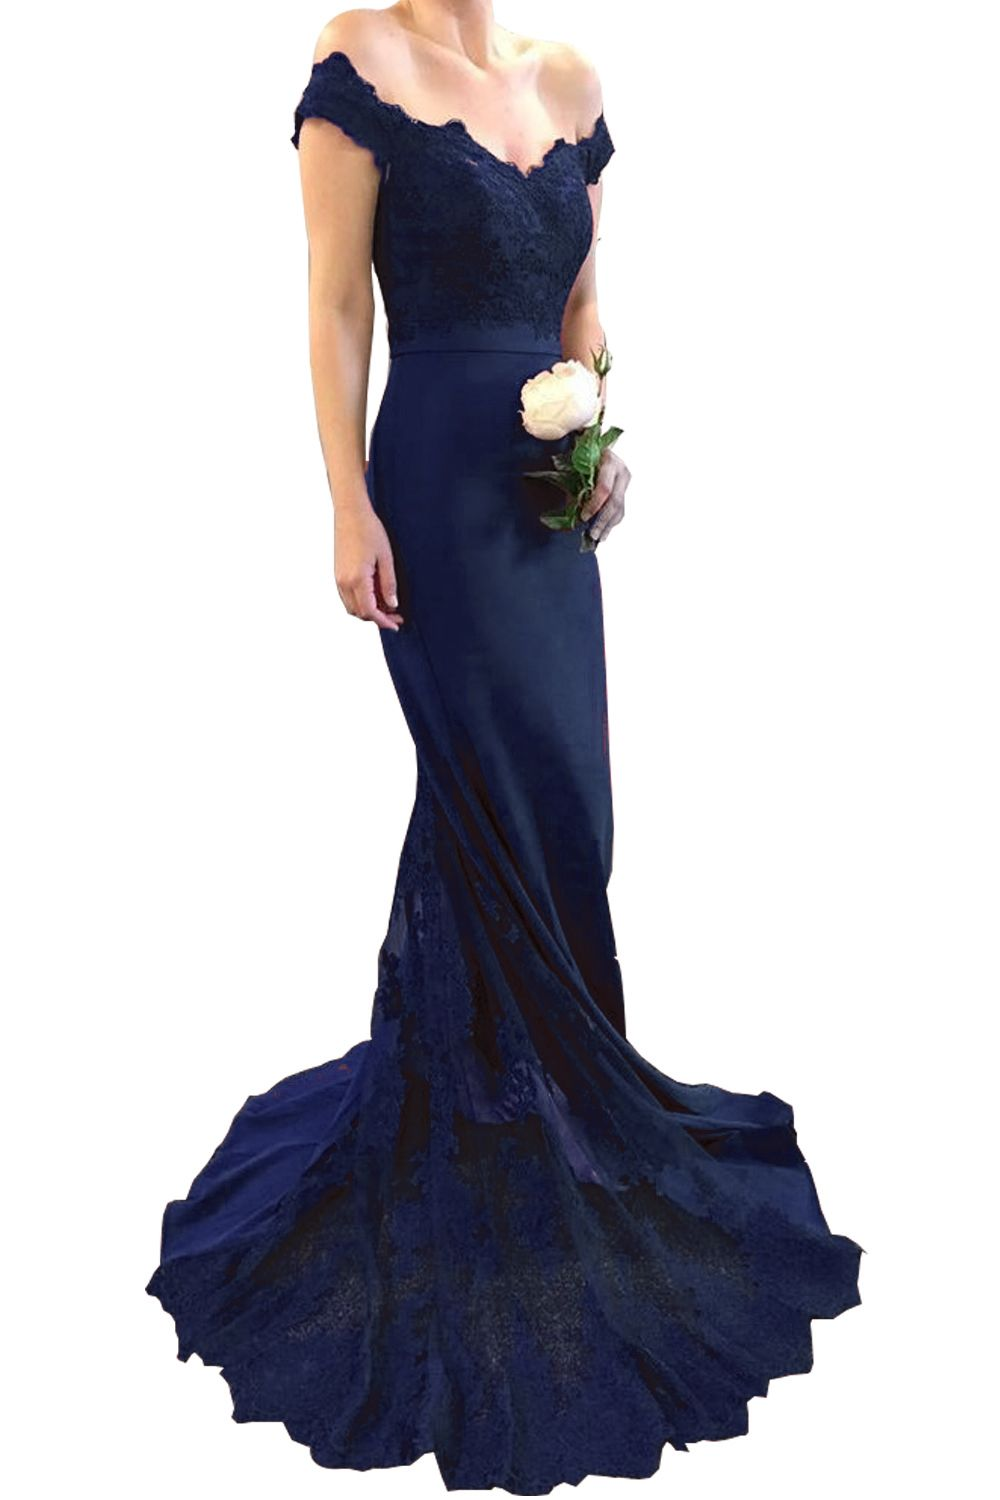 Red prom dress jersey long women formal wear with lace appliqued